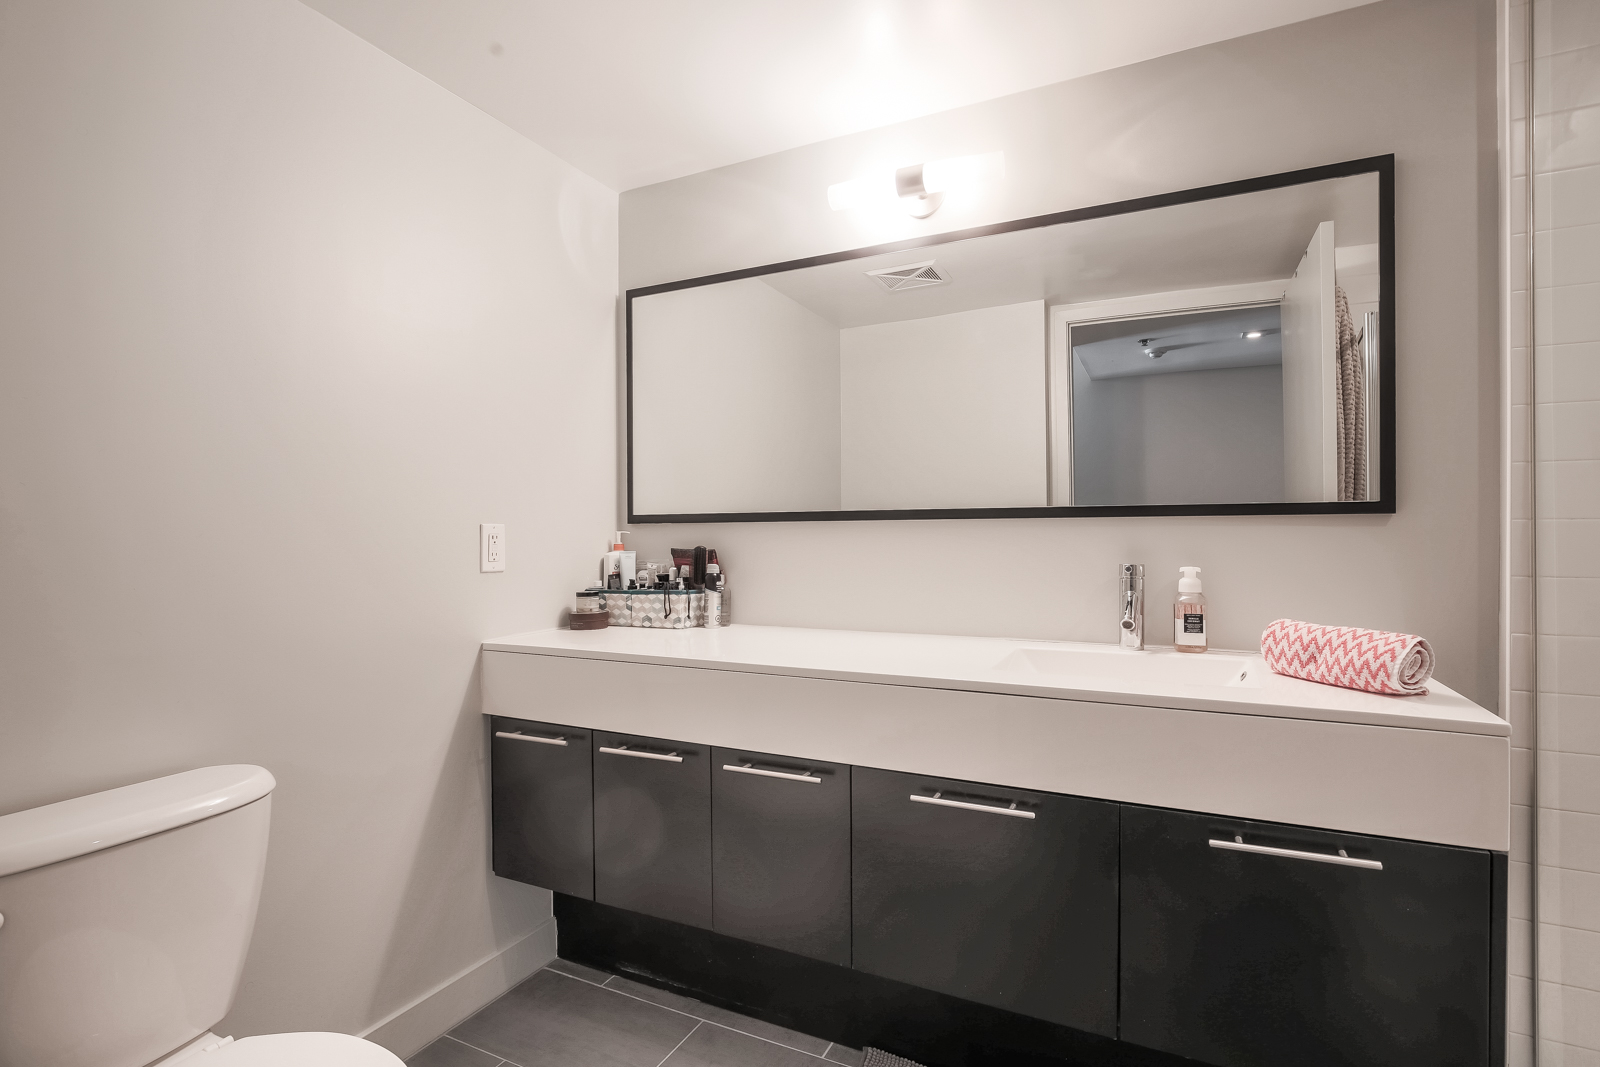 Photo showing 1 of the condo's 2 large bathrooms. This one has a wide, gorgeous mirror and clean lines